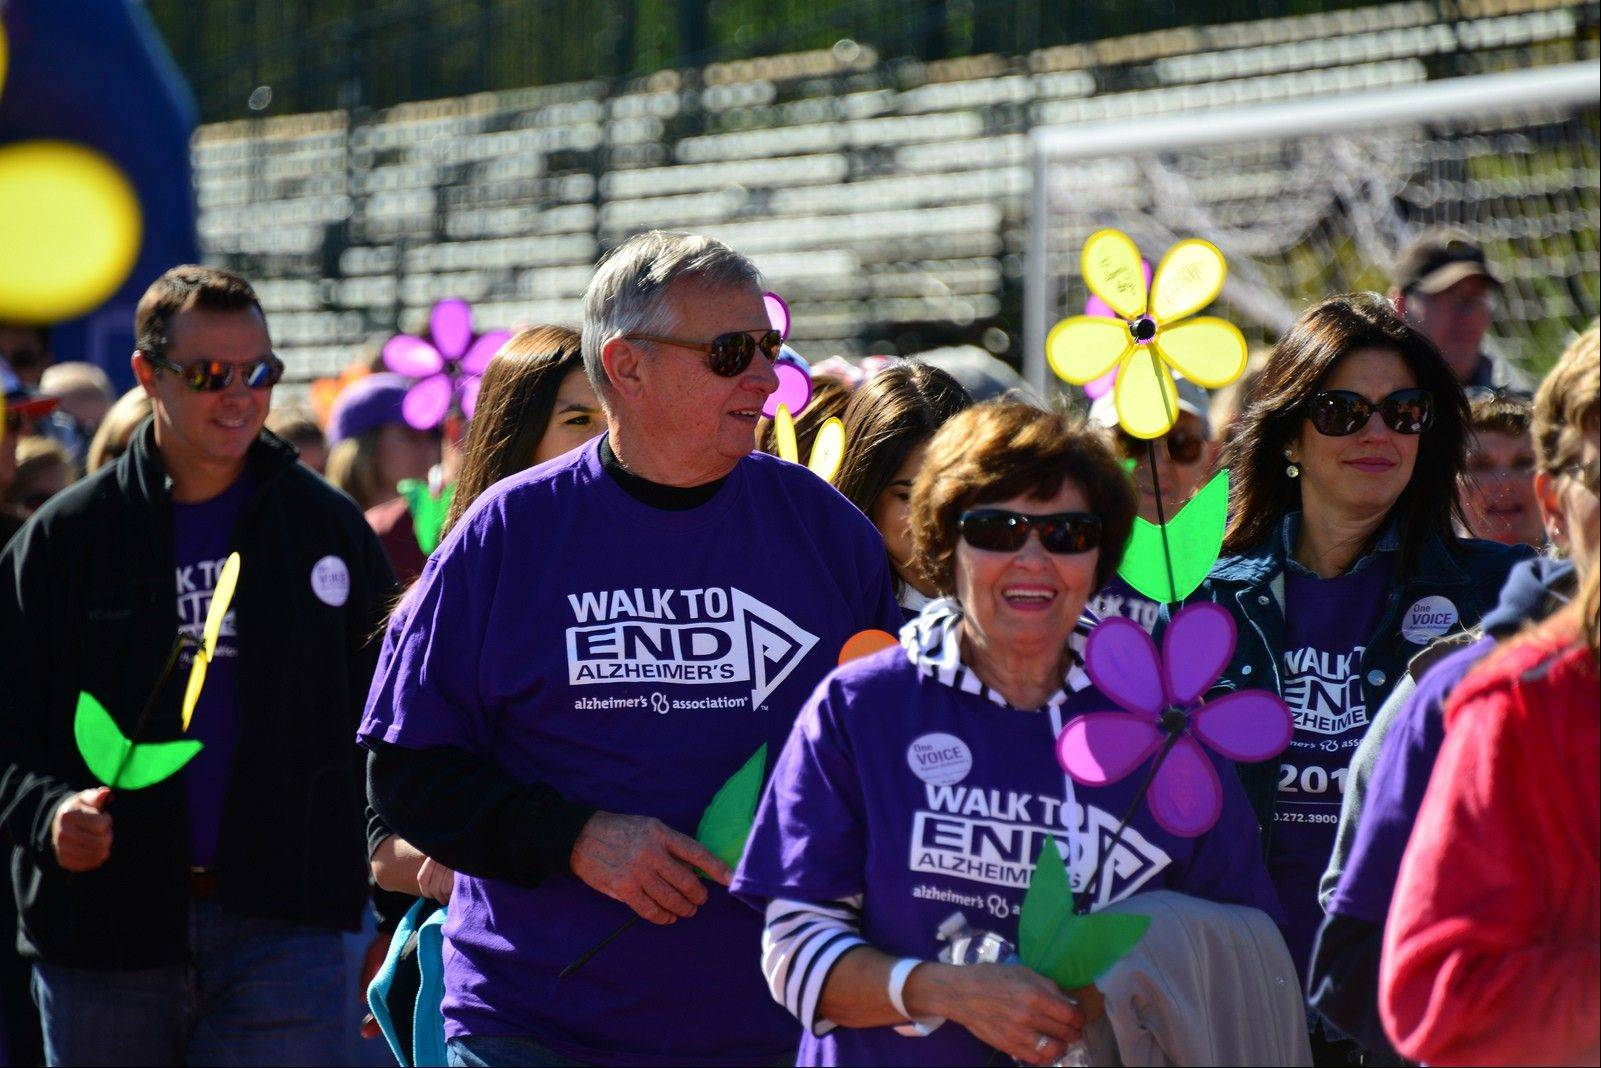 The Walk to End Alzheimer's raises money to support research and programs through the Alzheimer's Association.